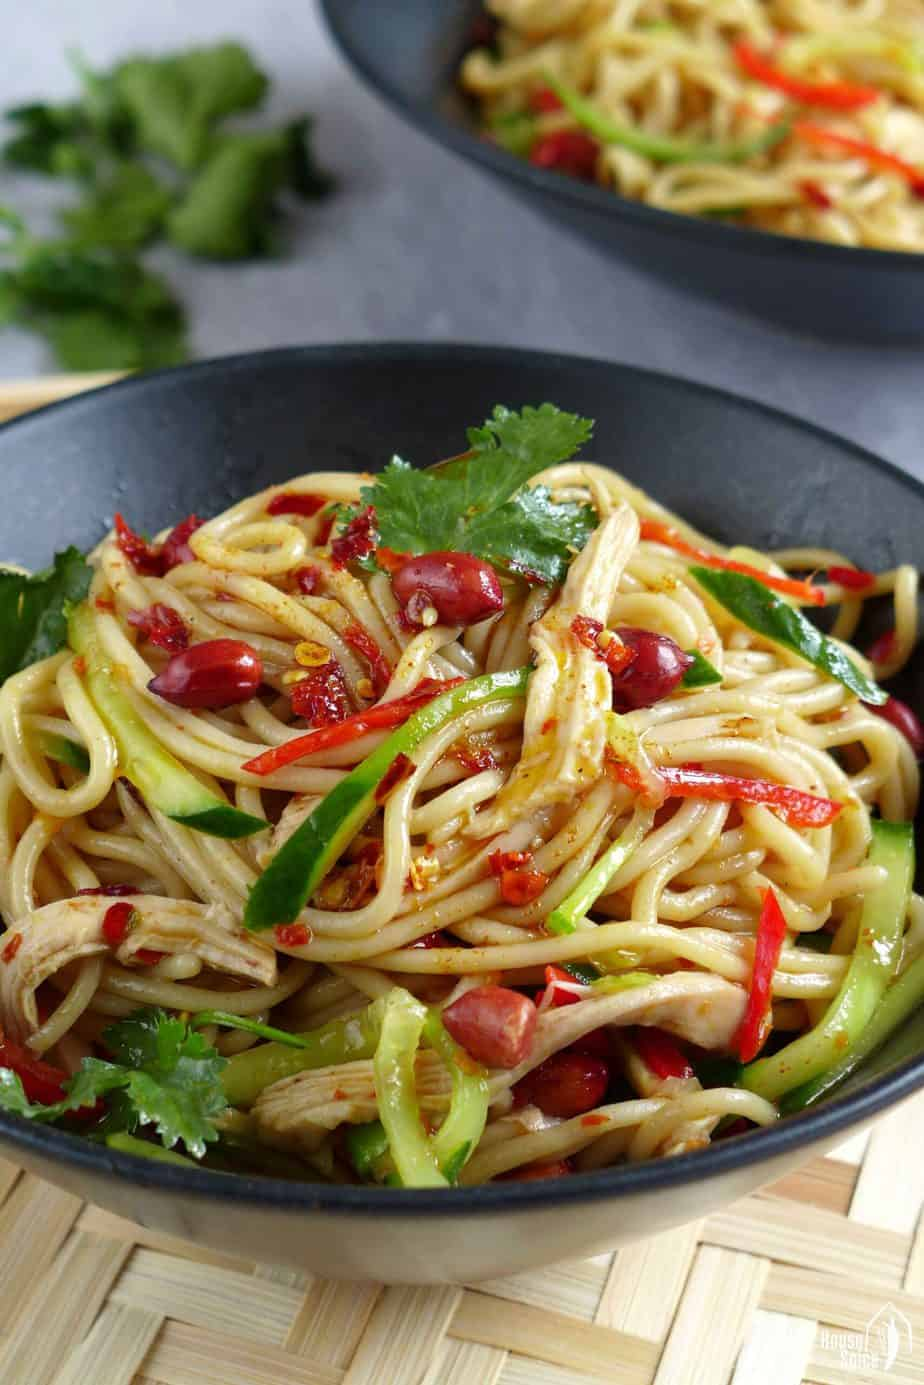 Cold noodles with Sichuan style dressing